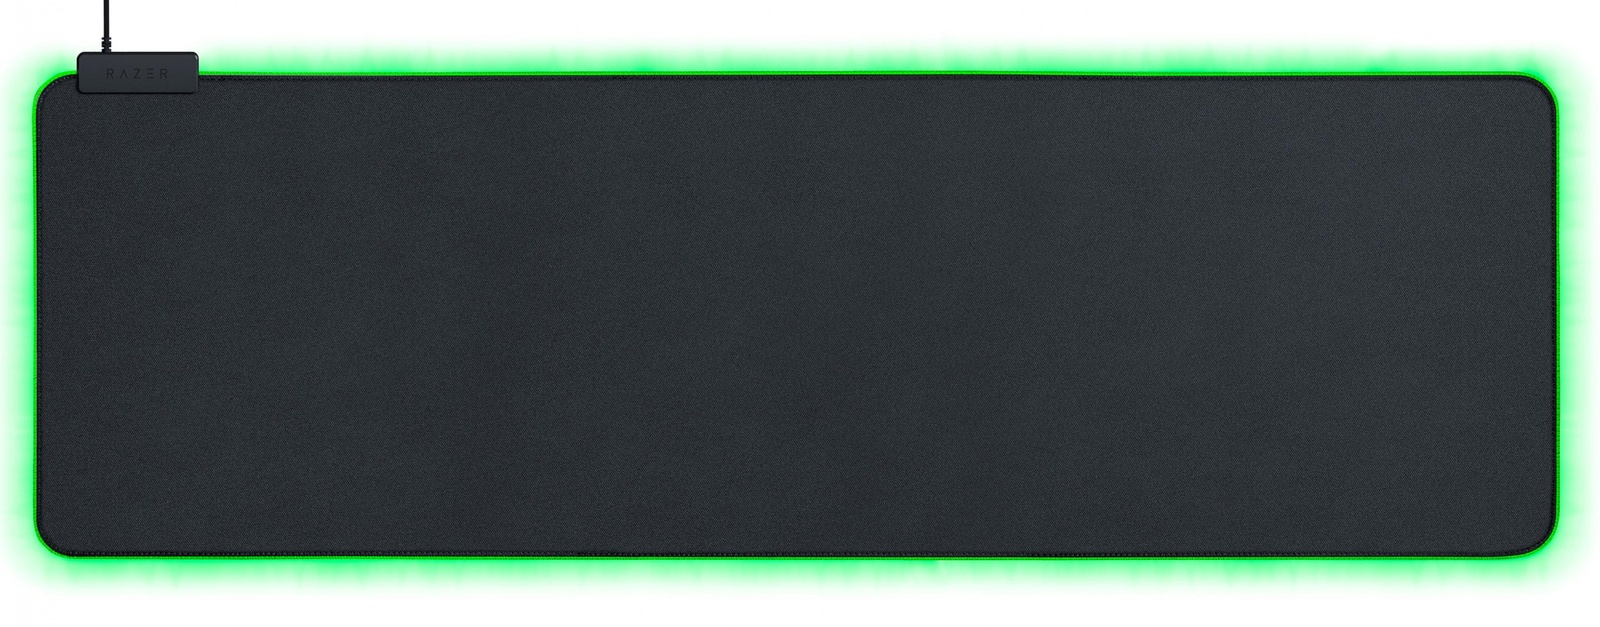 Коврик Razer Goliathus Chroma Extended - Soft Gaming Mouse Mat with FRML Packaging